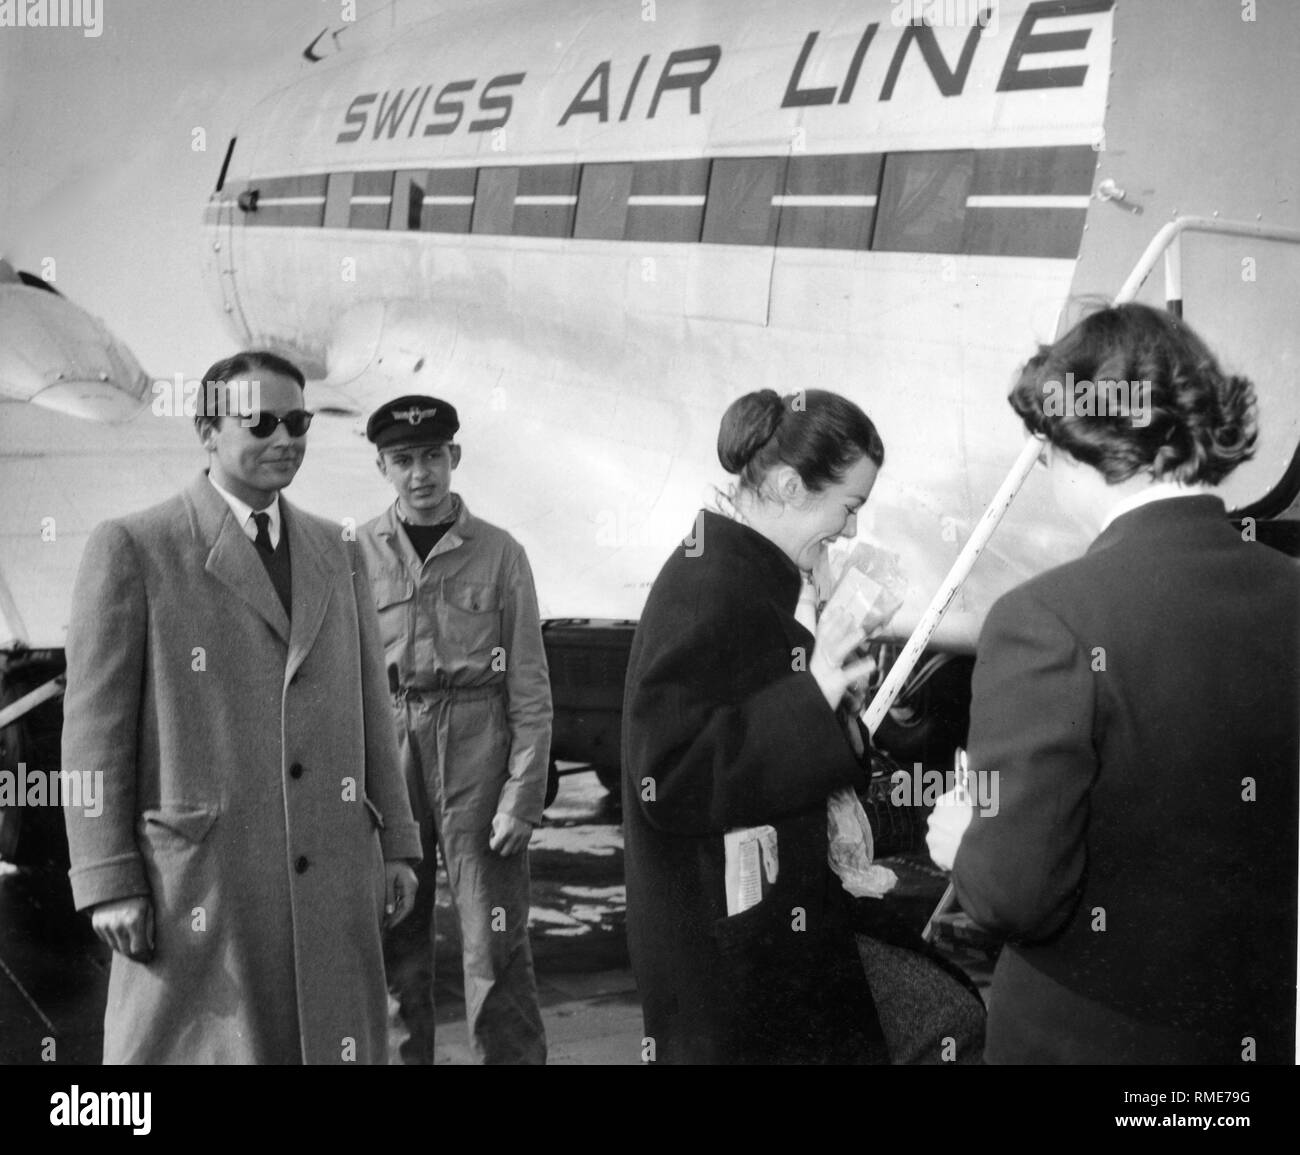 The actress Marianne Koch (2nd from the right) on the way to the USA. On the left, her husband Dr. Gerhard Freund. - Stock Image